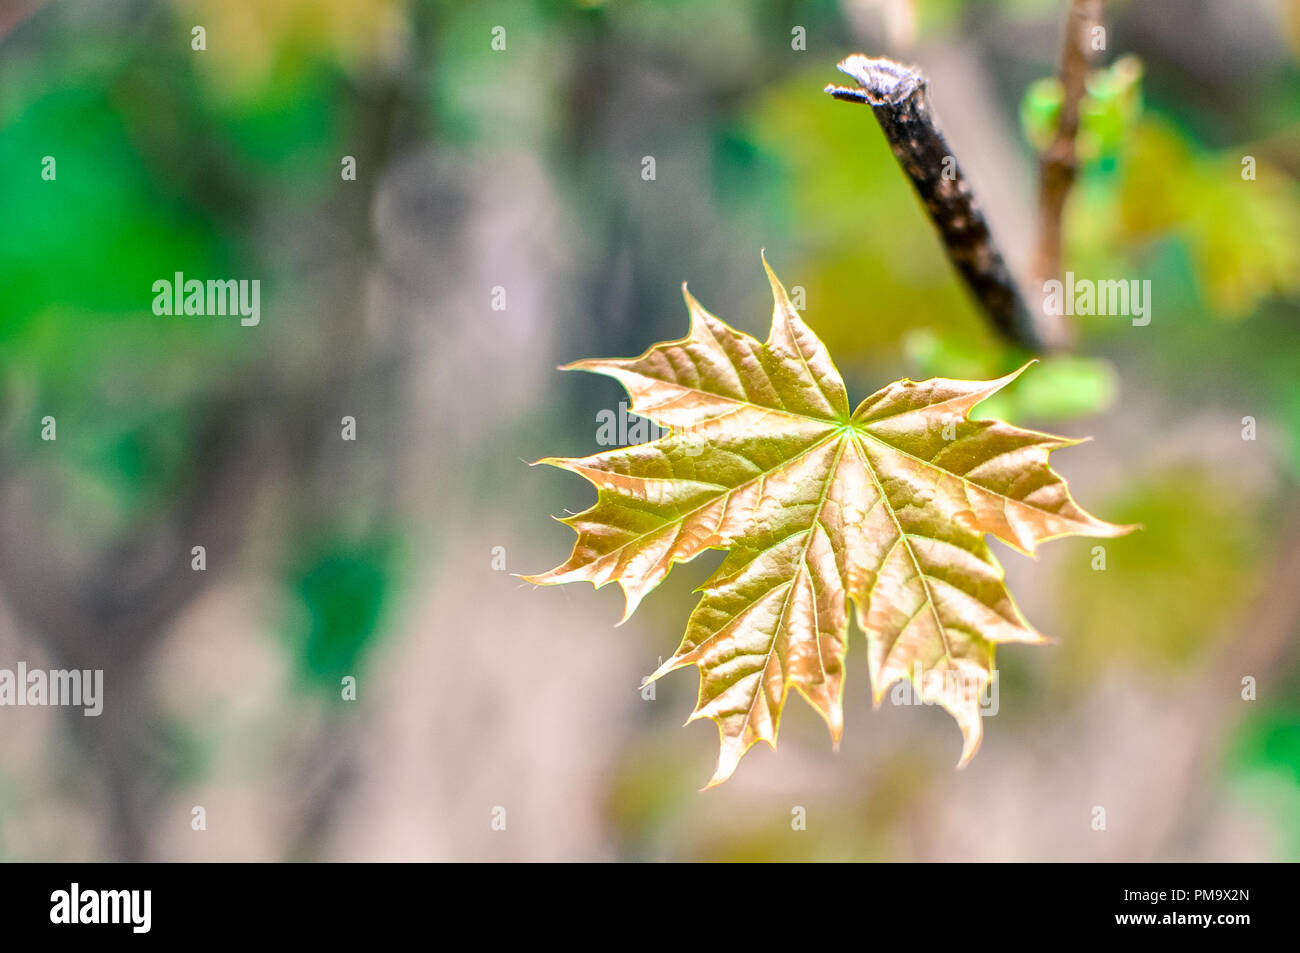 A Growing Maple Leaf At The Beginning Of Spring Stock Photo